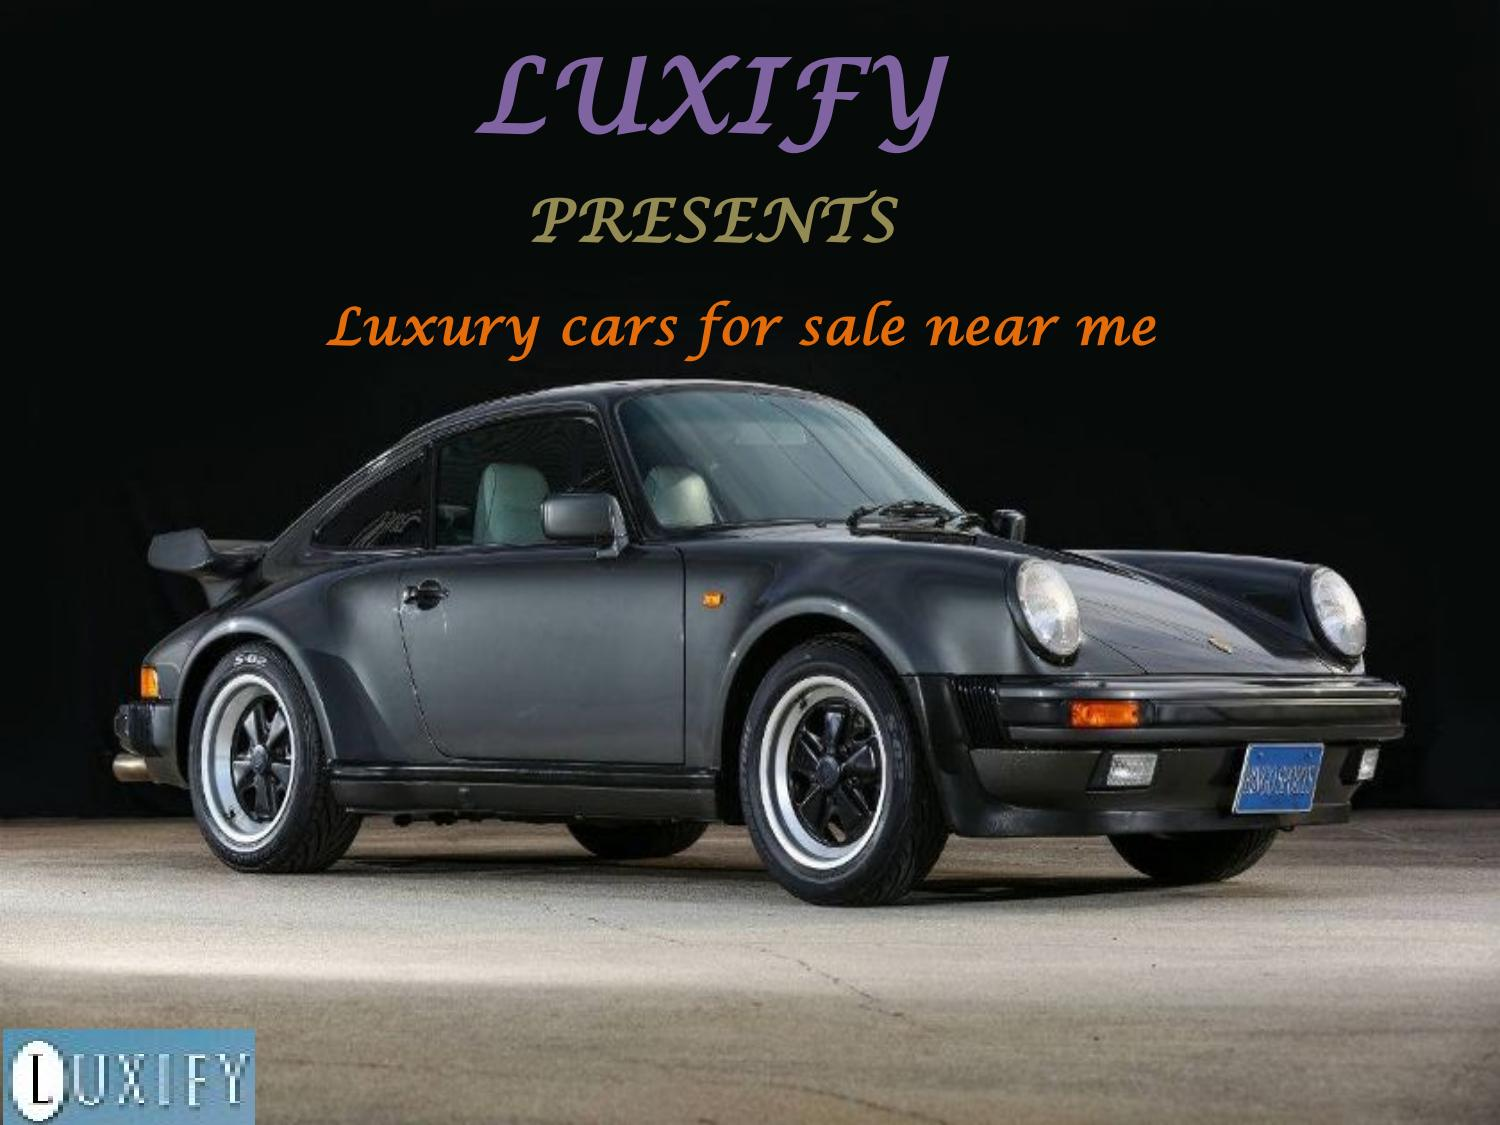 Luxury cars for sale near me by luxify - issuu